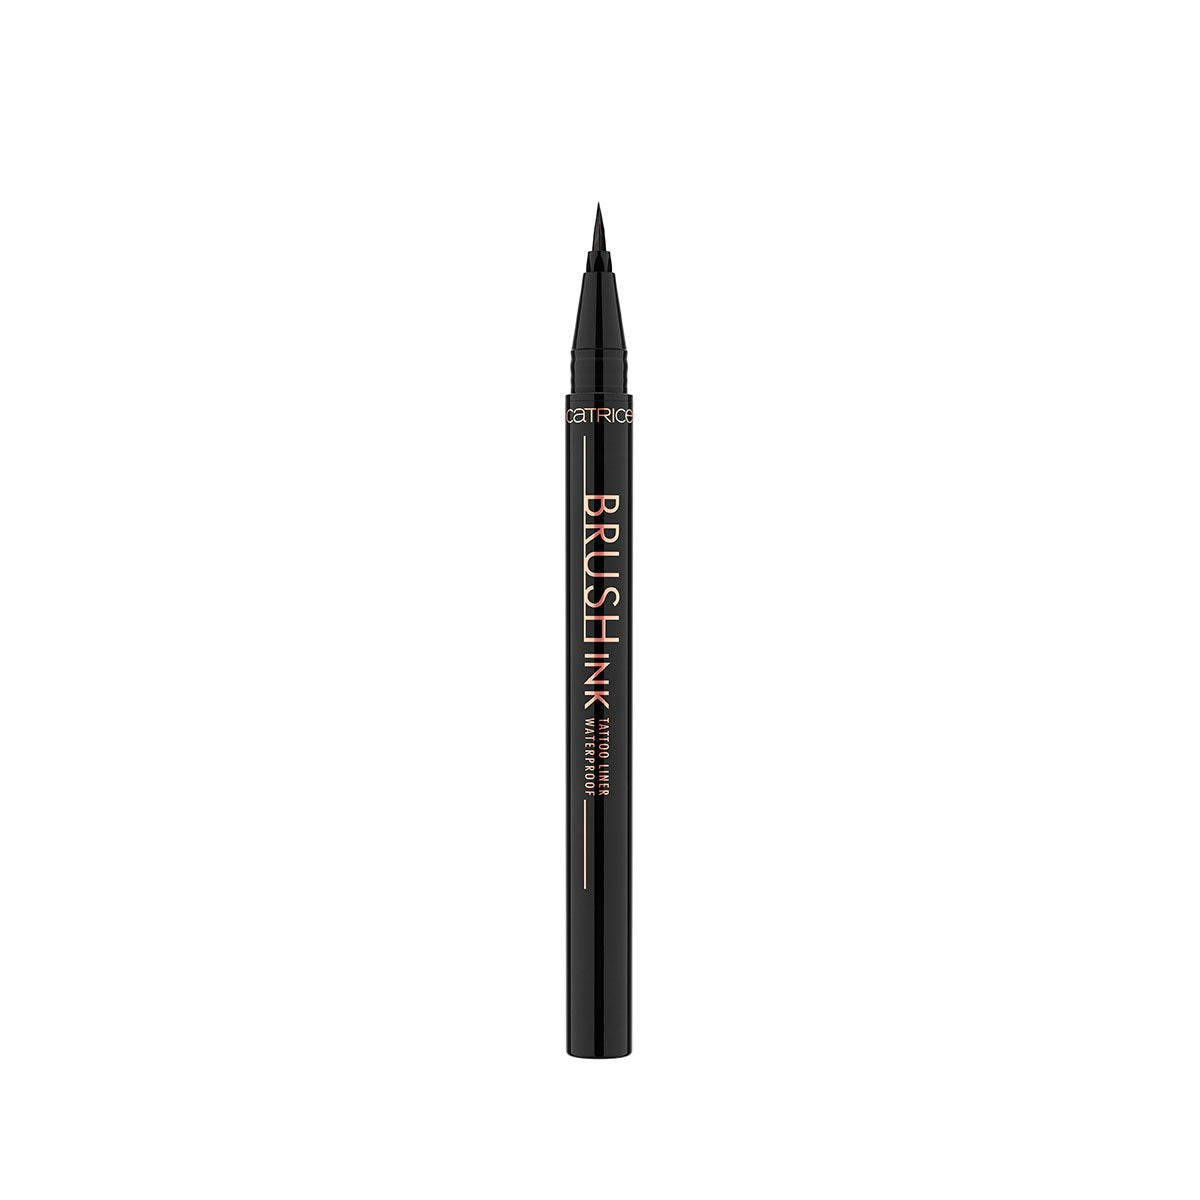 Catrice Brush Ink Tattoo Liner Waterproof